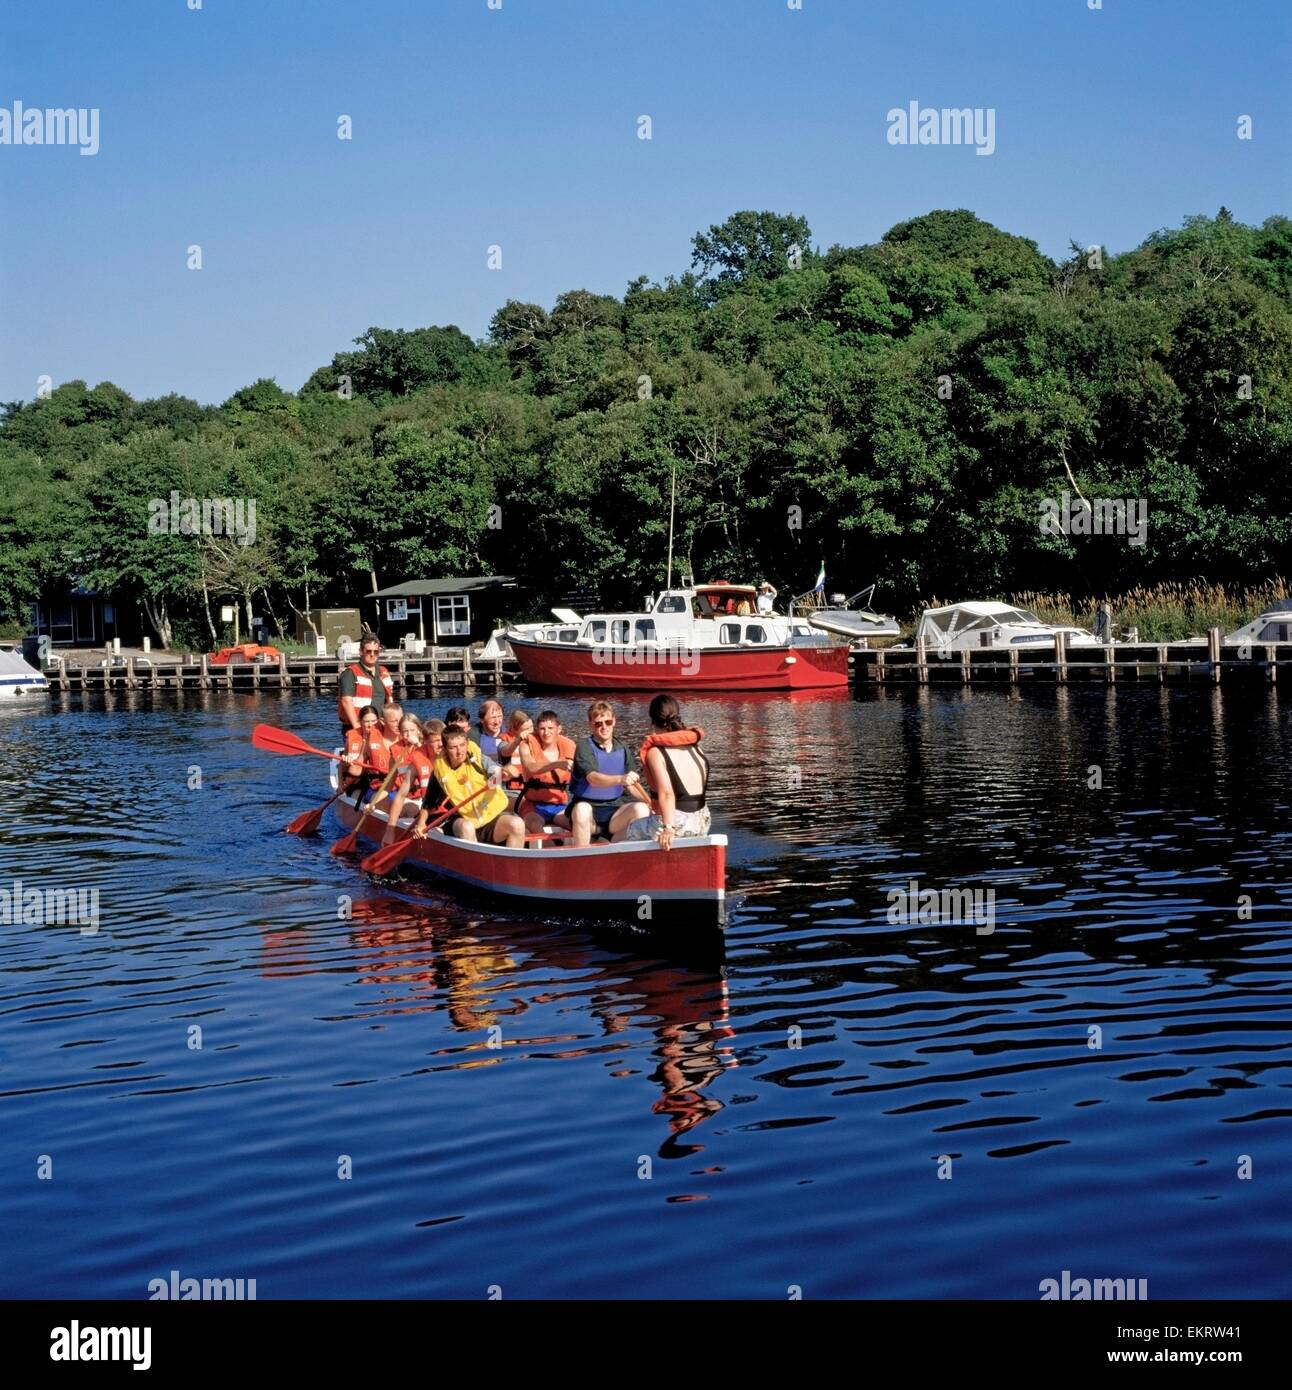 Youth Group In A Boat, Castle Archdale Country Park, Co Fermanagh, Ireland - Stock Image